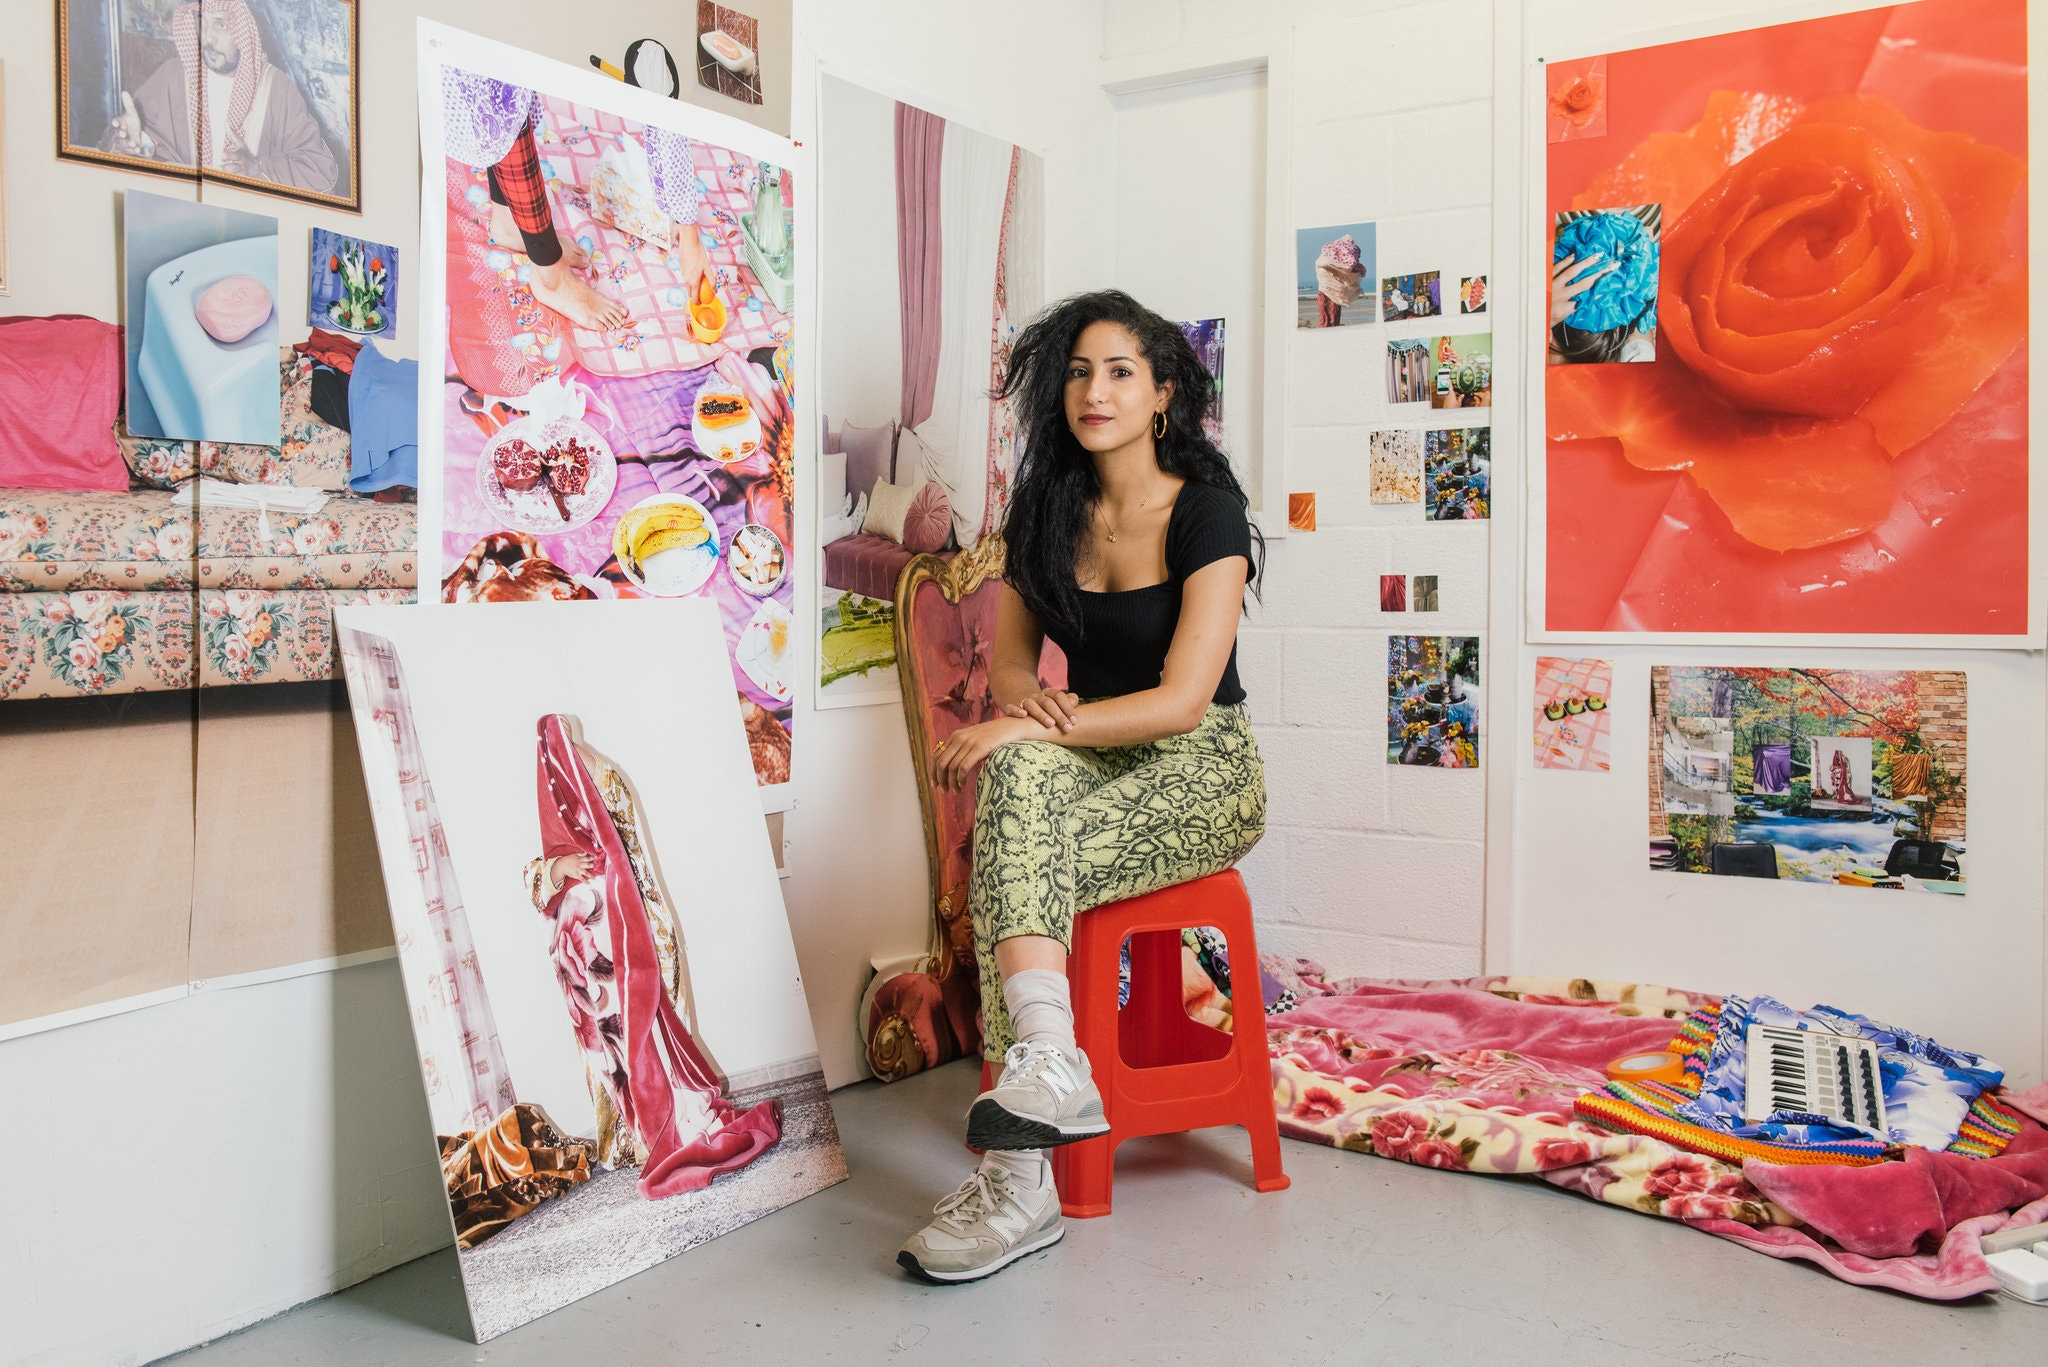 Artist Farah Al Qasimi sits in her studio in Williamsburg, Brooklyn, surrounded by her photographs from her home country, the United Arab Emirates. The photos are vibrant and colorful.